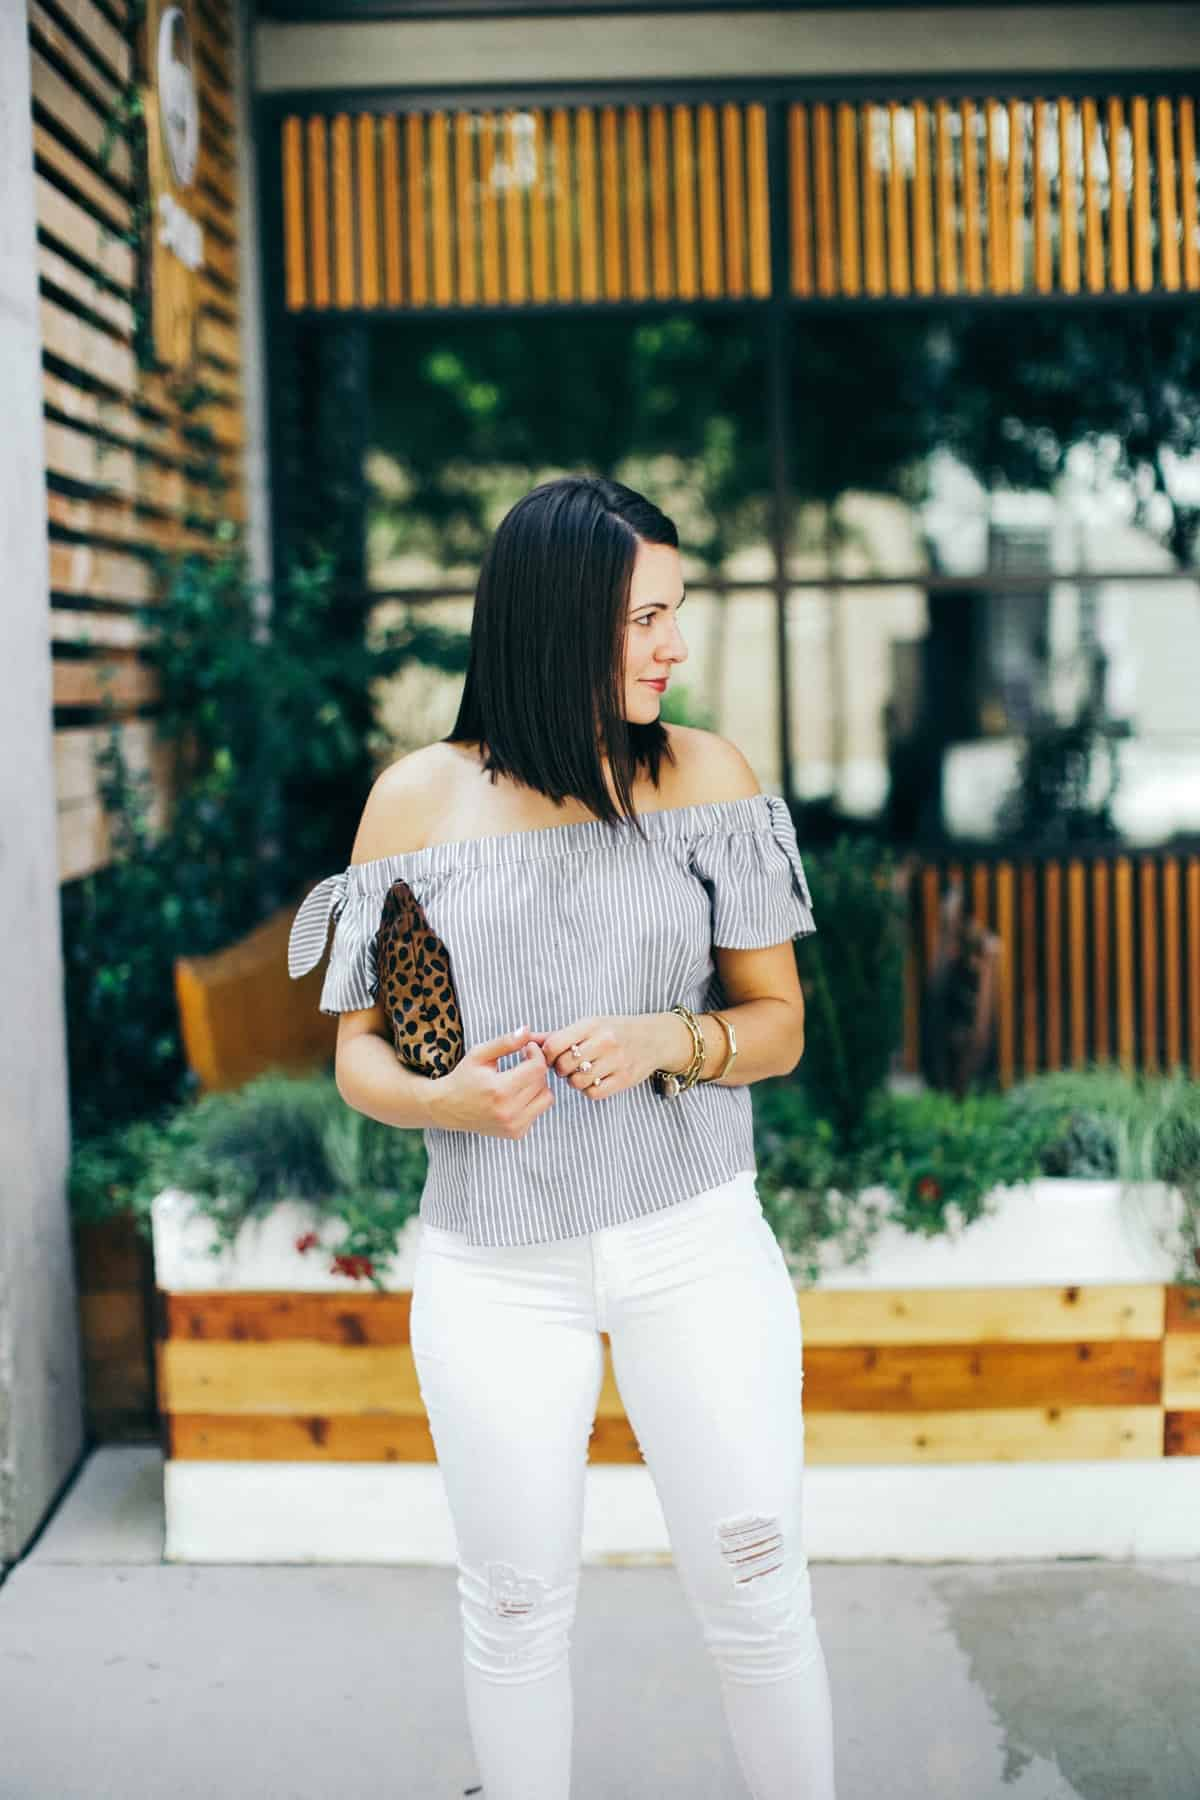 offoff the shoulder outfit ideas - My Style Vita @mystylevita the shoulder outfit ideas - My Style Vita @mystylevita - 10